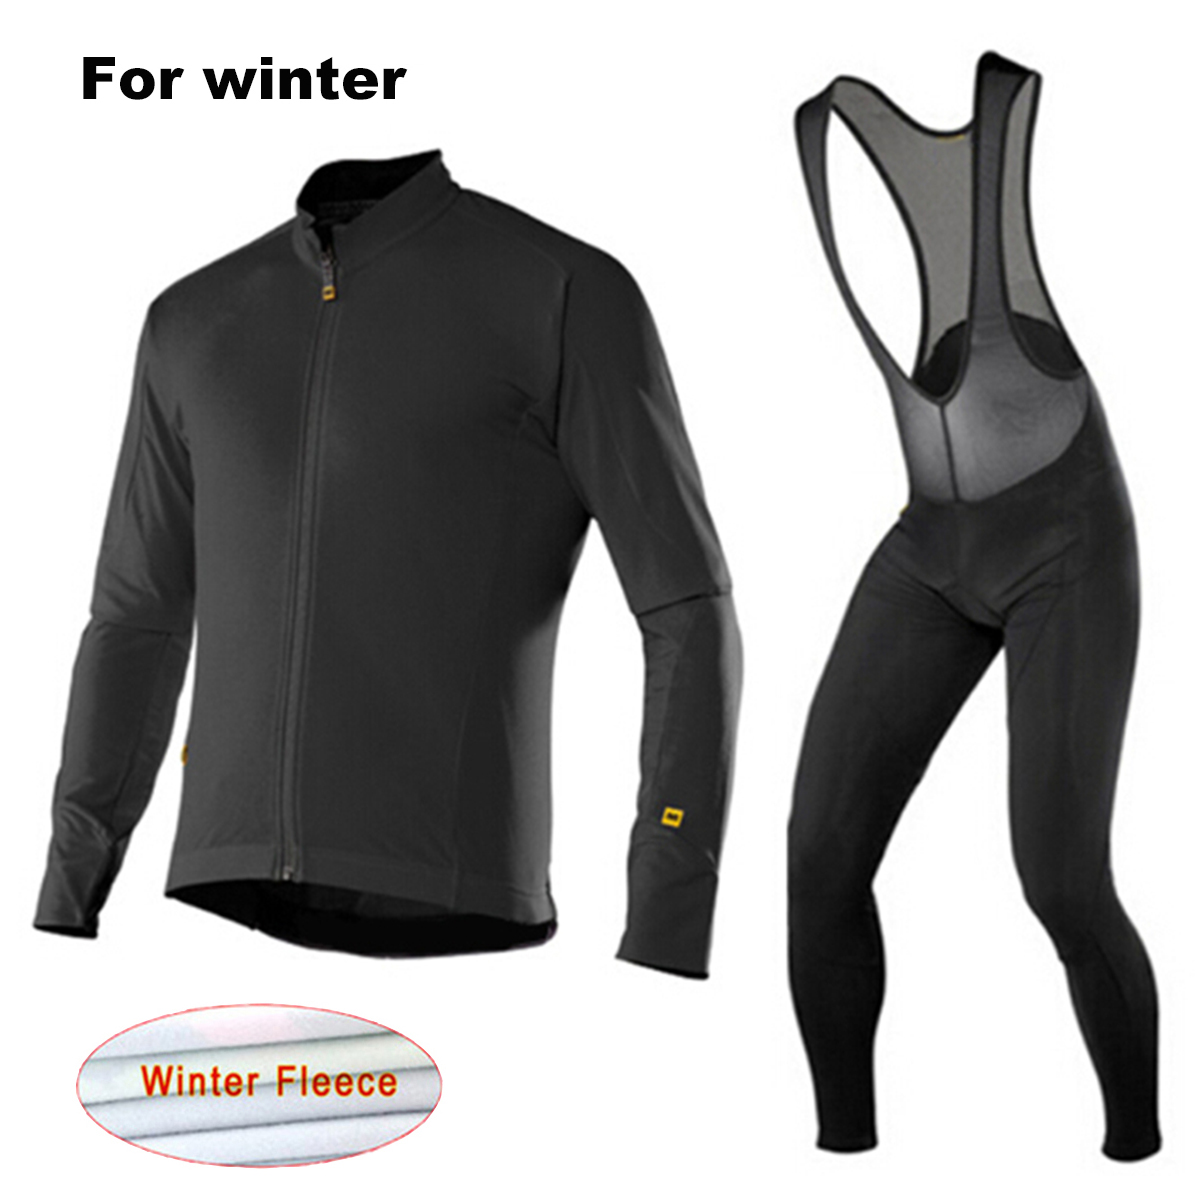 Mavic Winter Thermal Fleece Bicycle Clothing Bib Set Men`s Long Sleeves Cycling Jersey Warm Outdoor Sport Coat Suit 9D Gel Pad black thermal fleece cycling clothing winter fleece long adequate quality cycling jersey bicycle clothing cc5081